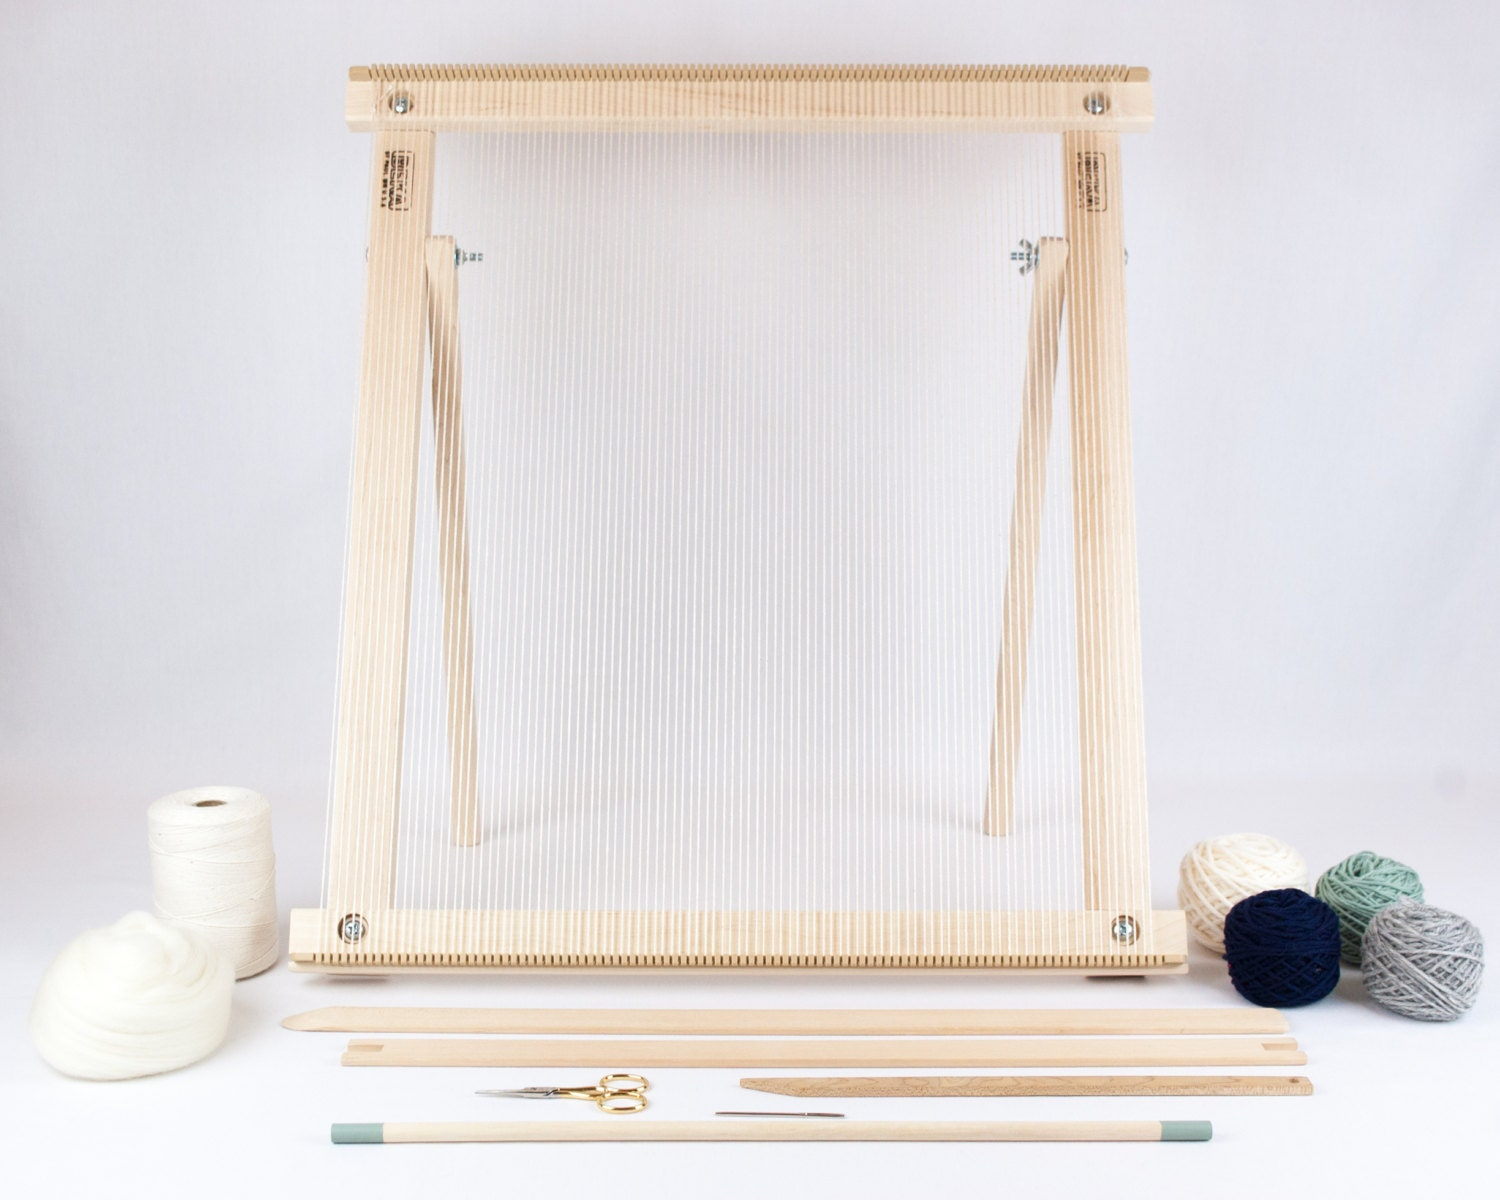 frame loom with stand weaving kit mossnavy